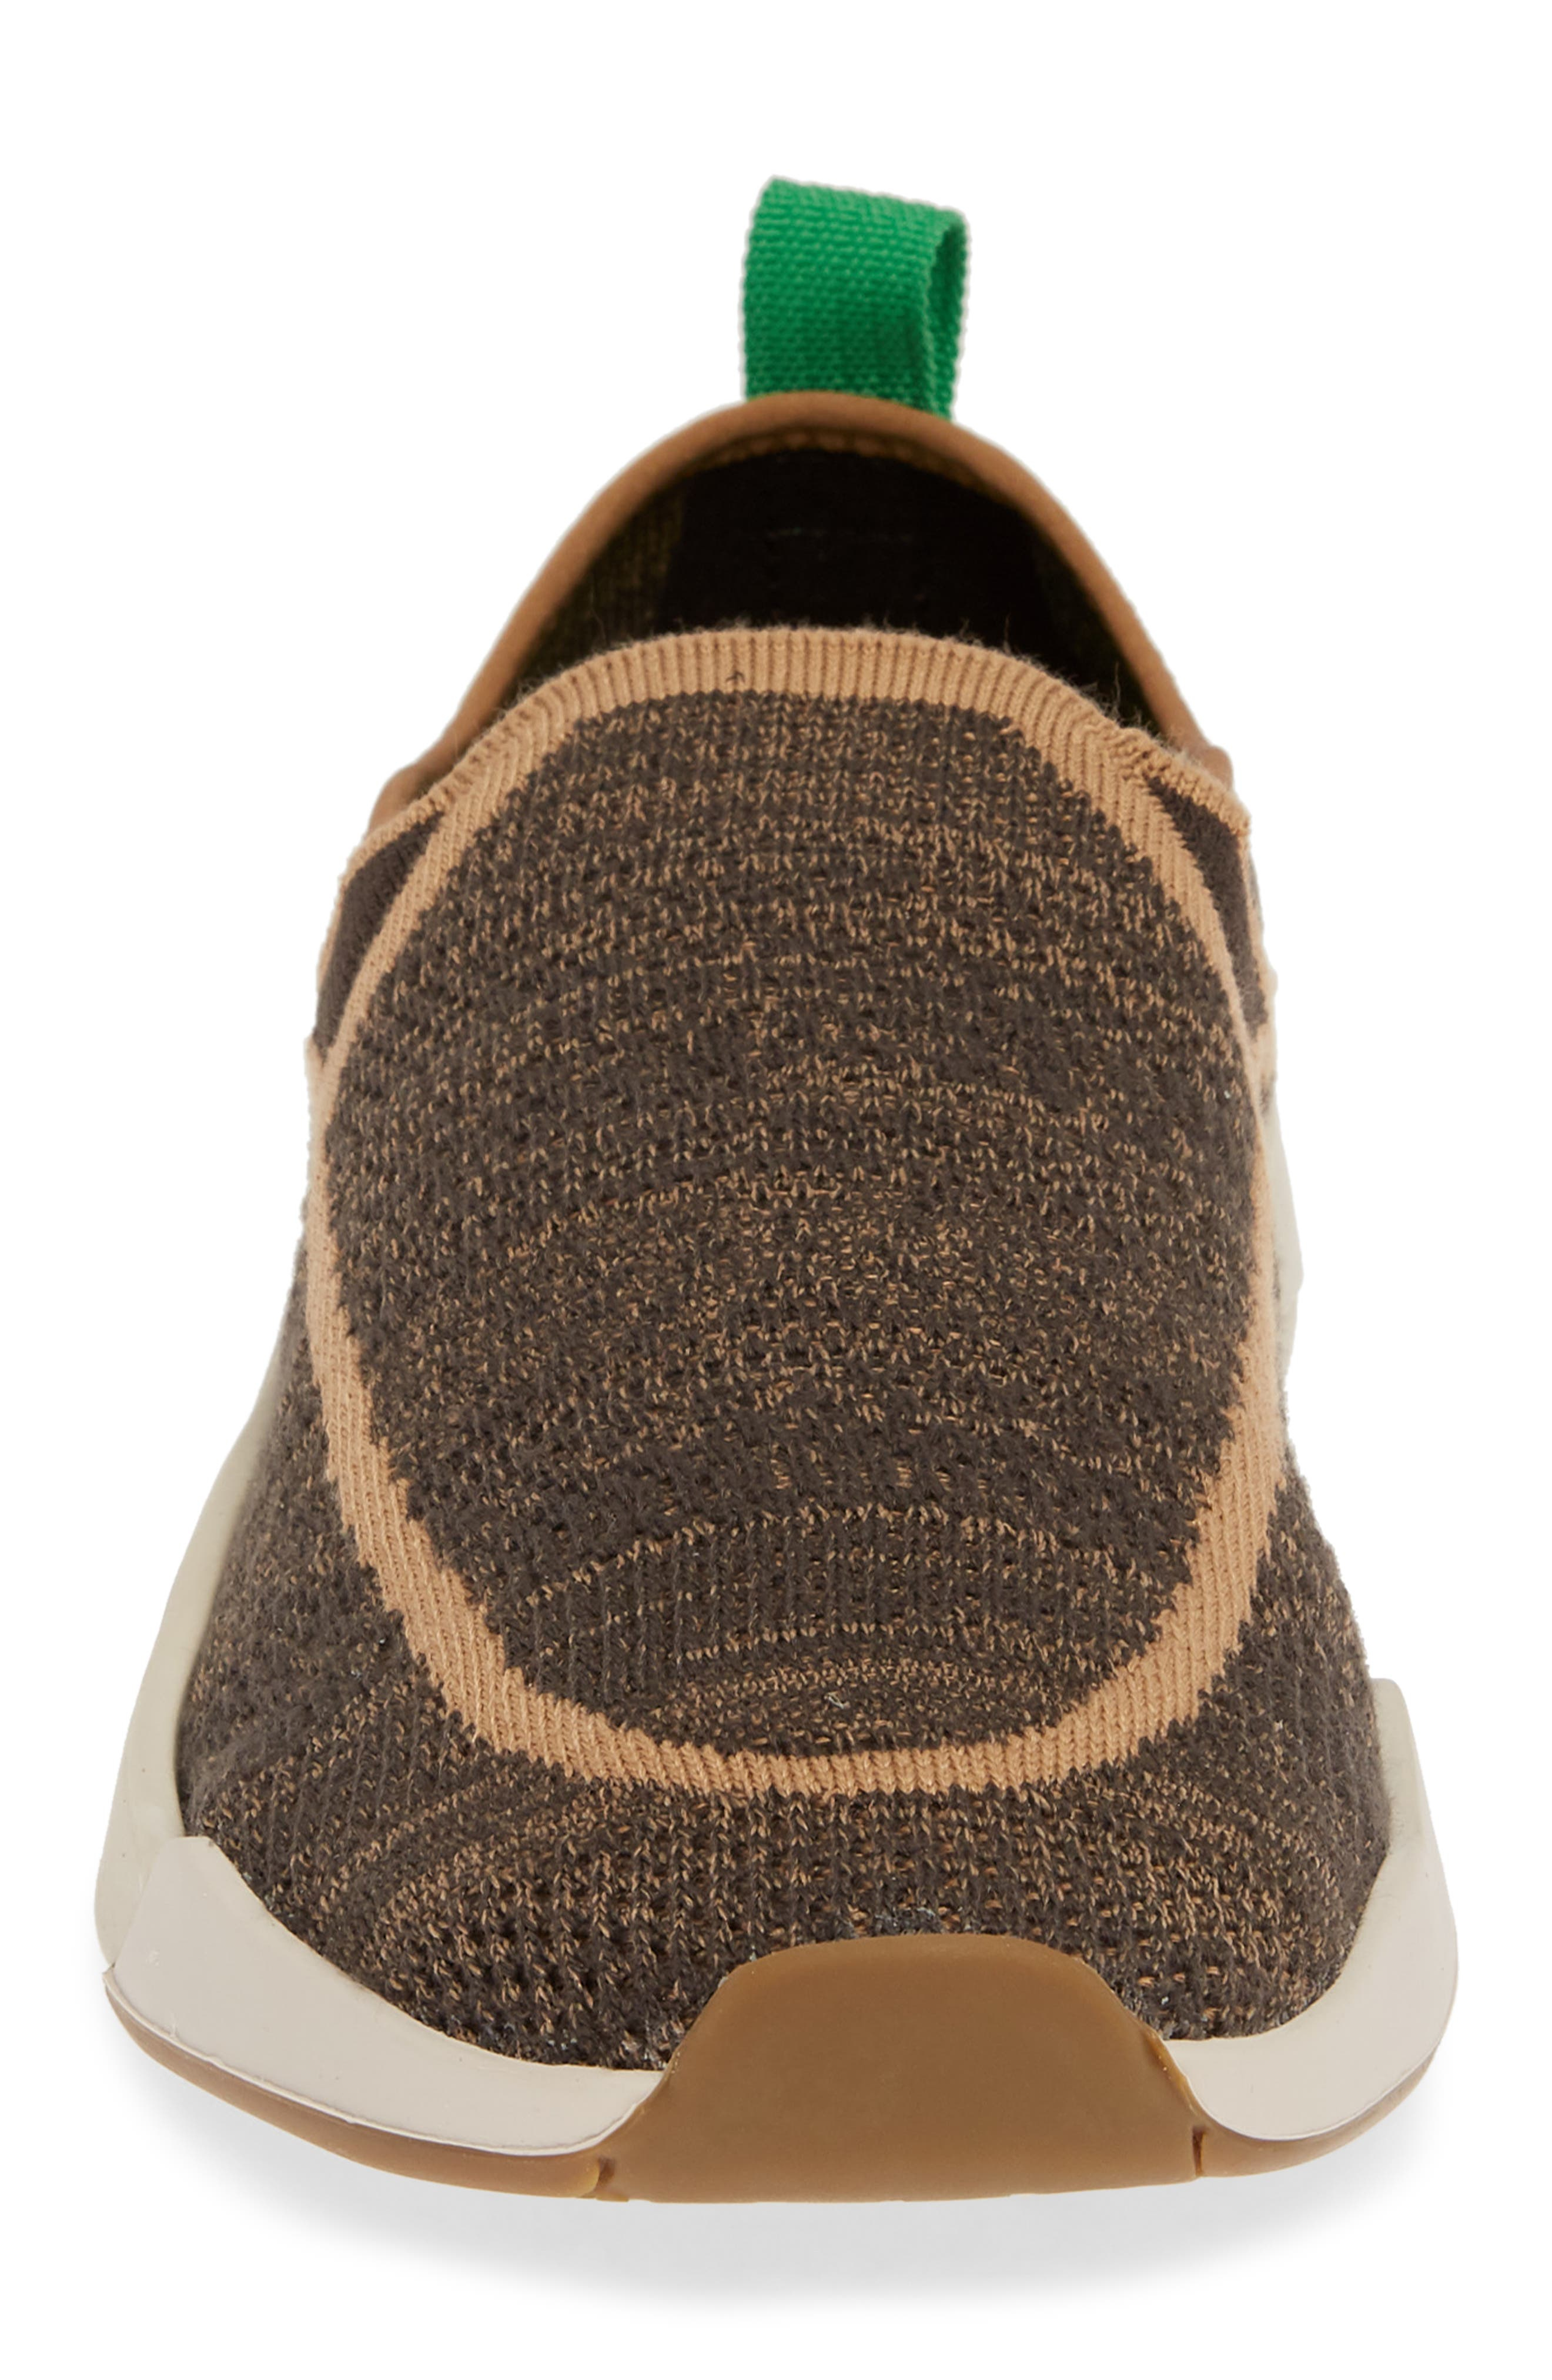 SANUK, Chiba Quest Knit Slip-On Sneaker, Alternate thumbnail 4, color, BROWN NATURAL